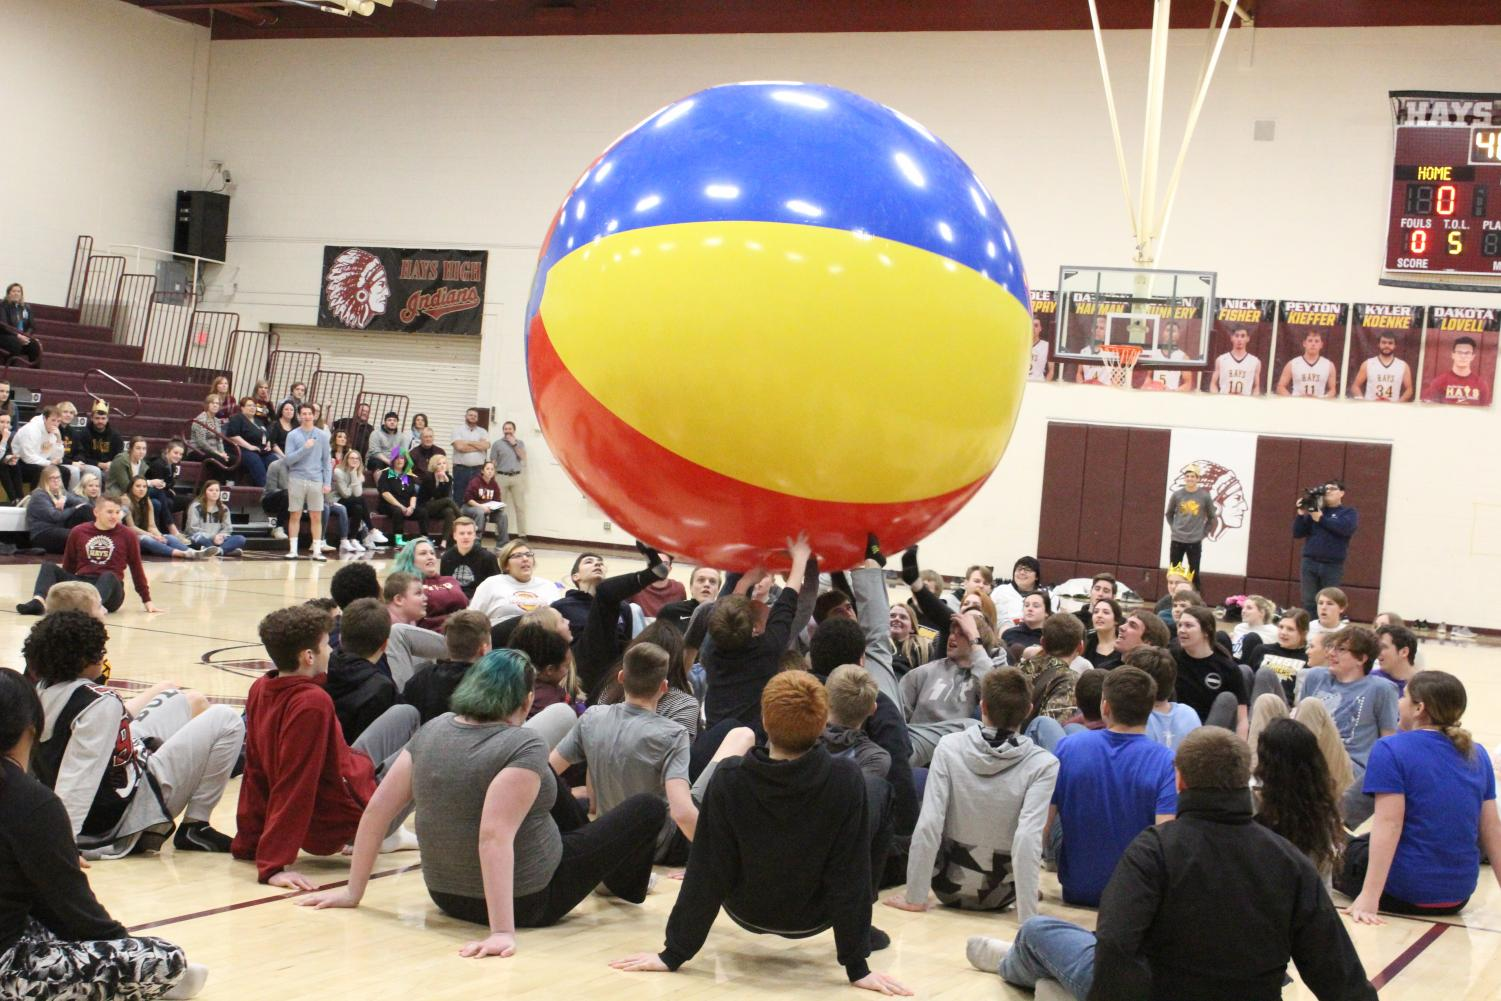 Freshmen compete against seniors in the beach ball competition.  Each class was trying to kick the ball over the other team's free throw line.